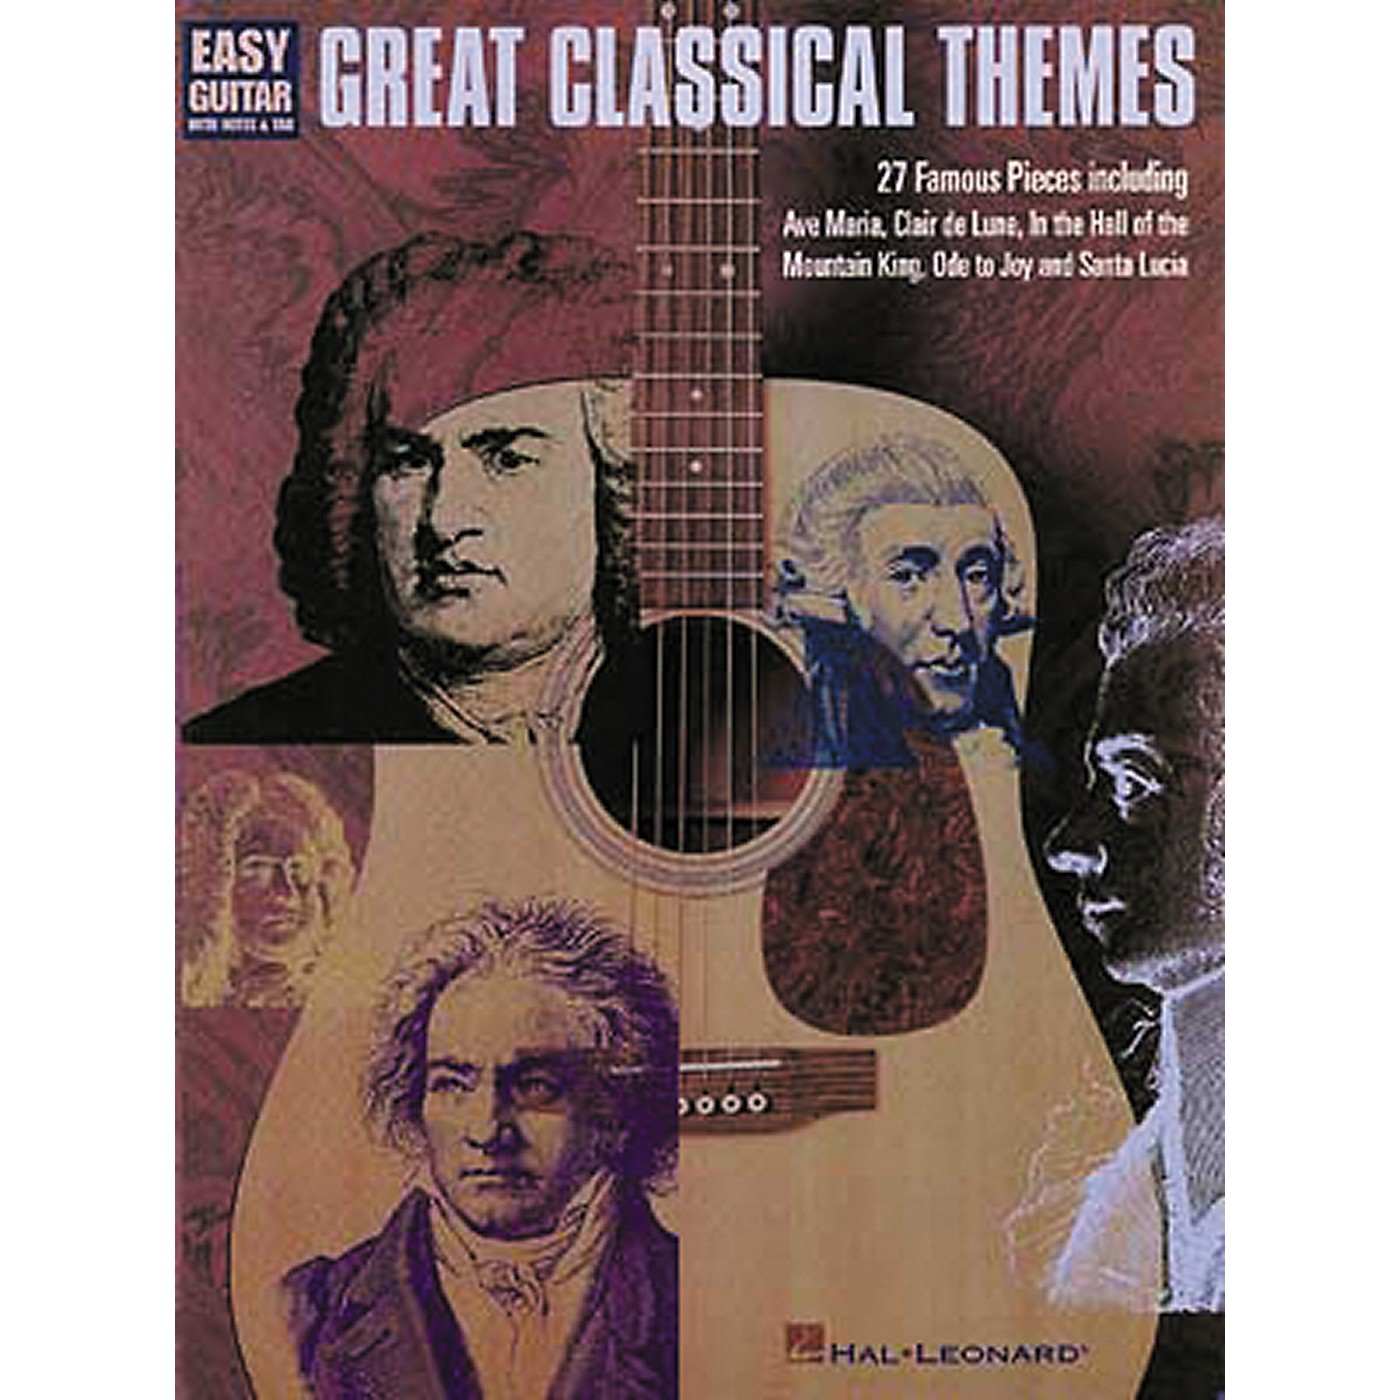 Hal Leonard Great Classical Themes for Easy Guitar Tab Book thumbnail